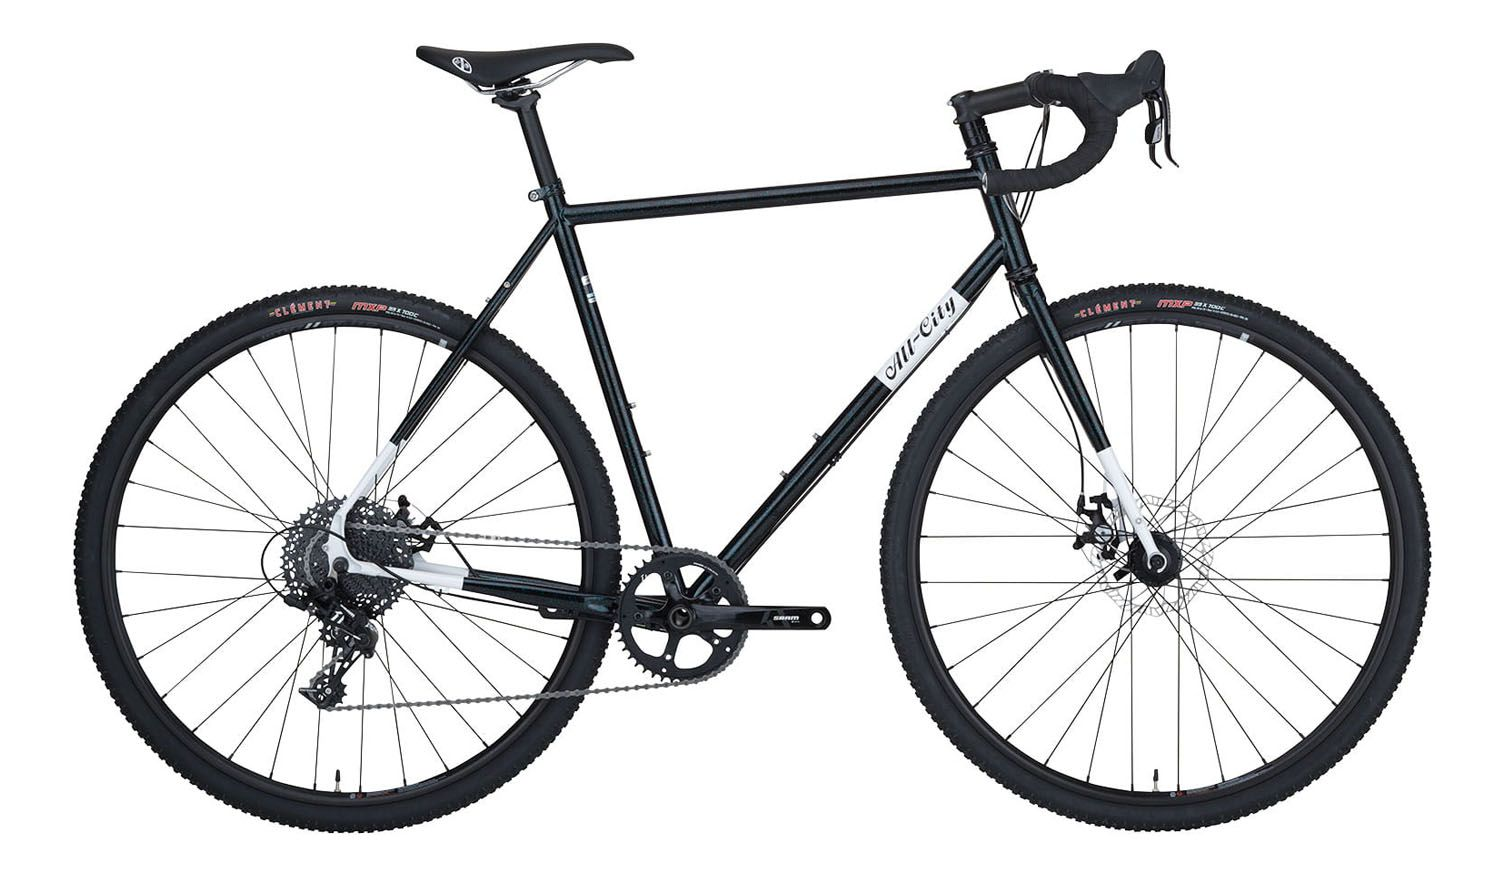 b6568cb06e3 Best Commuter Bikes 2019 – Bikes for Riding in the City